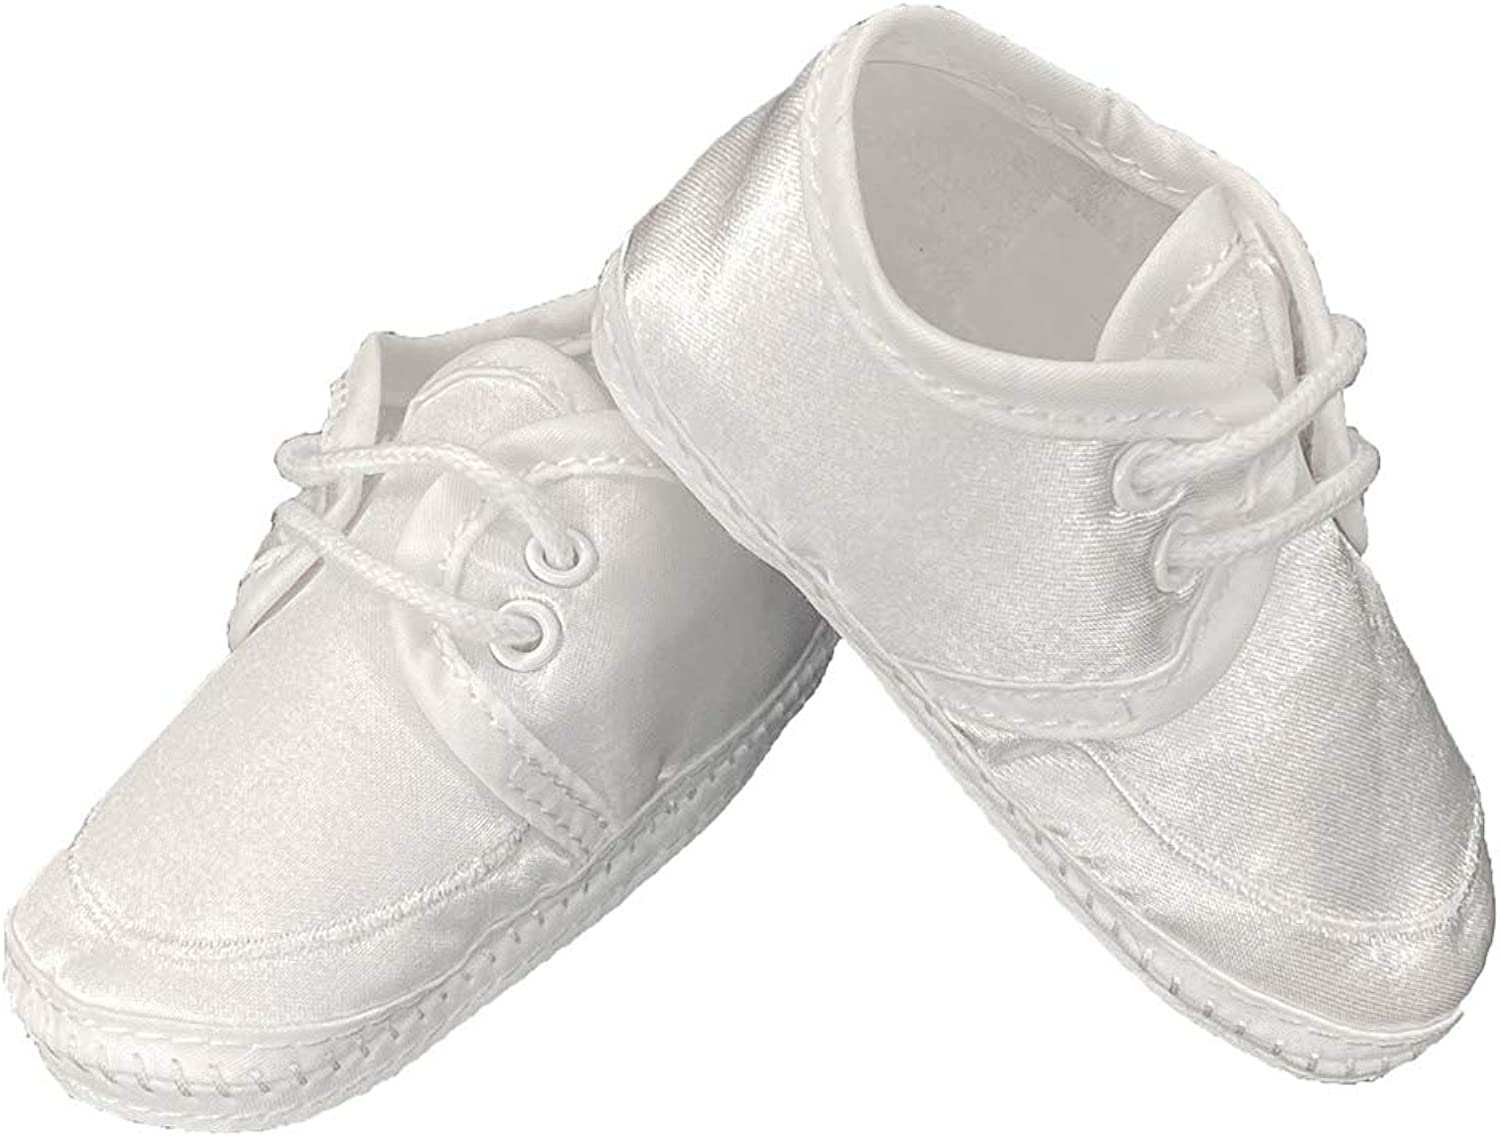 Baby Boy Satin Bootie Perfect for a Christening Baptism or Any Special Occasion